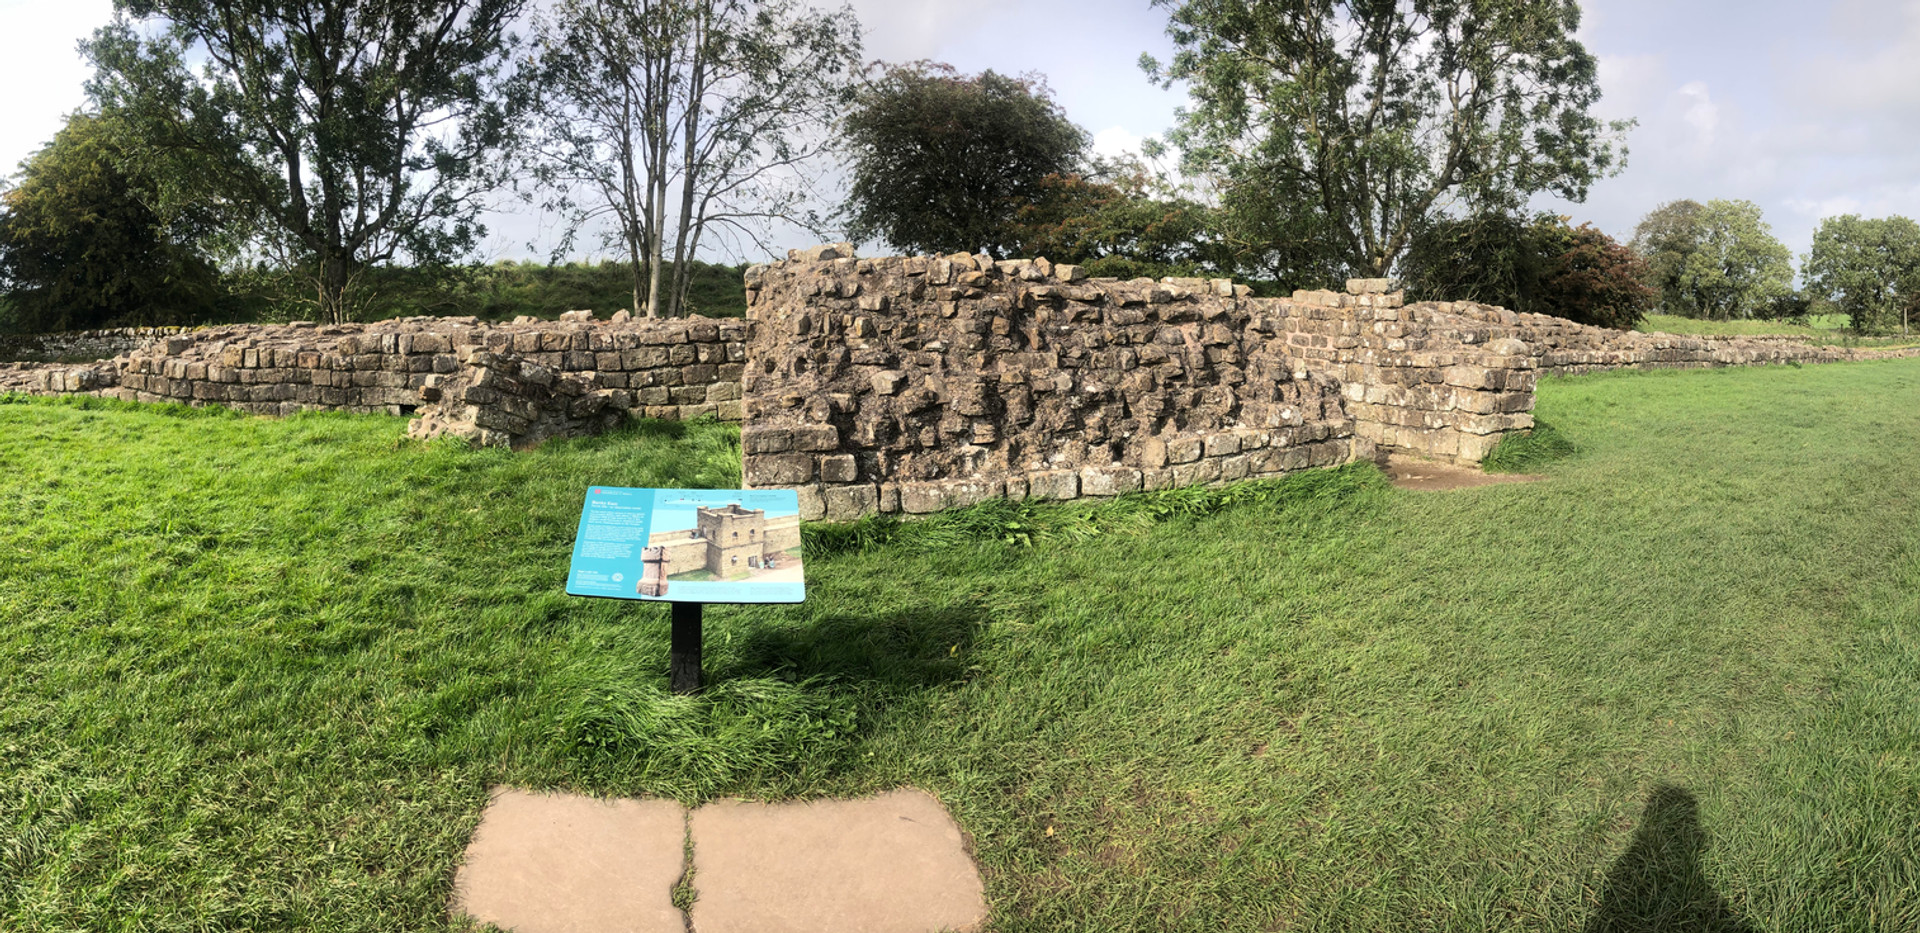 One of the Many Milecastles